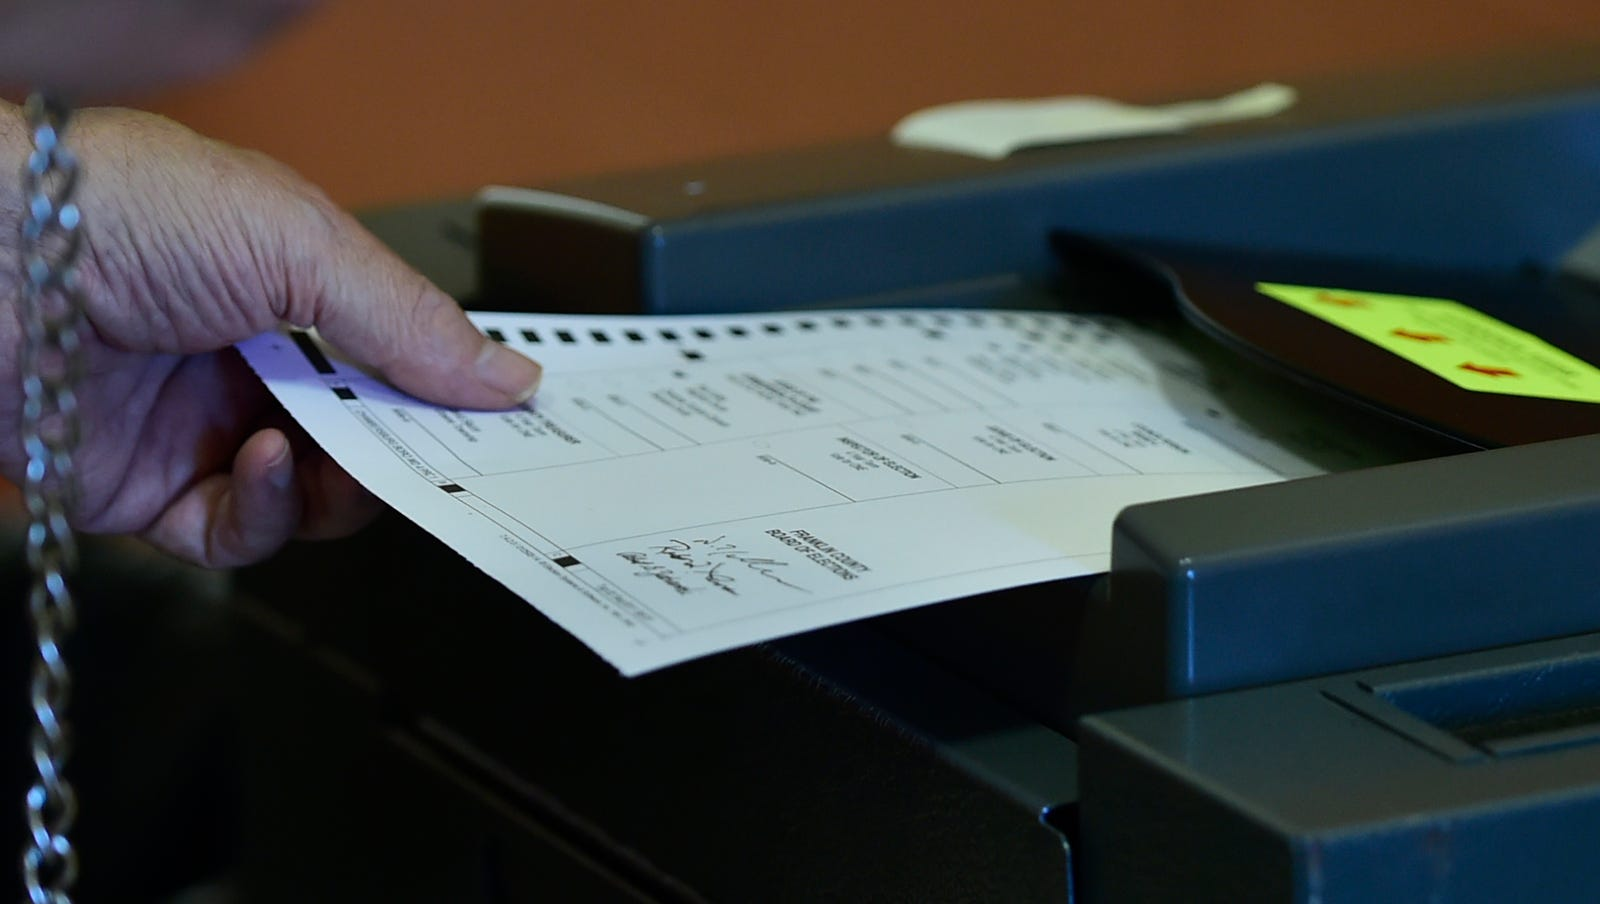 Primary election day: Vote for local offices (don't forget the special election for Senate)